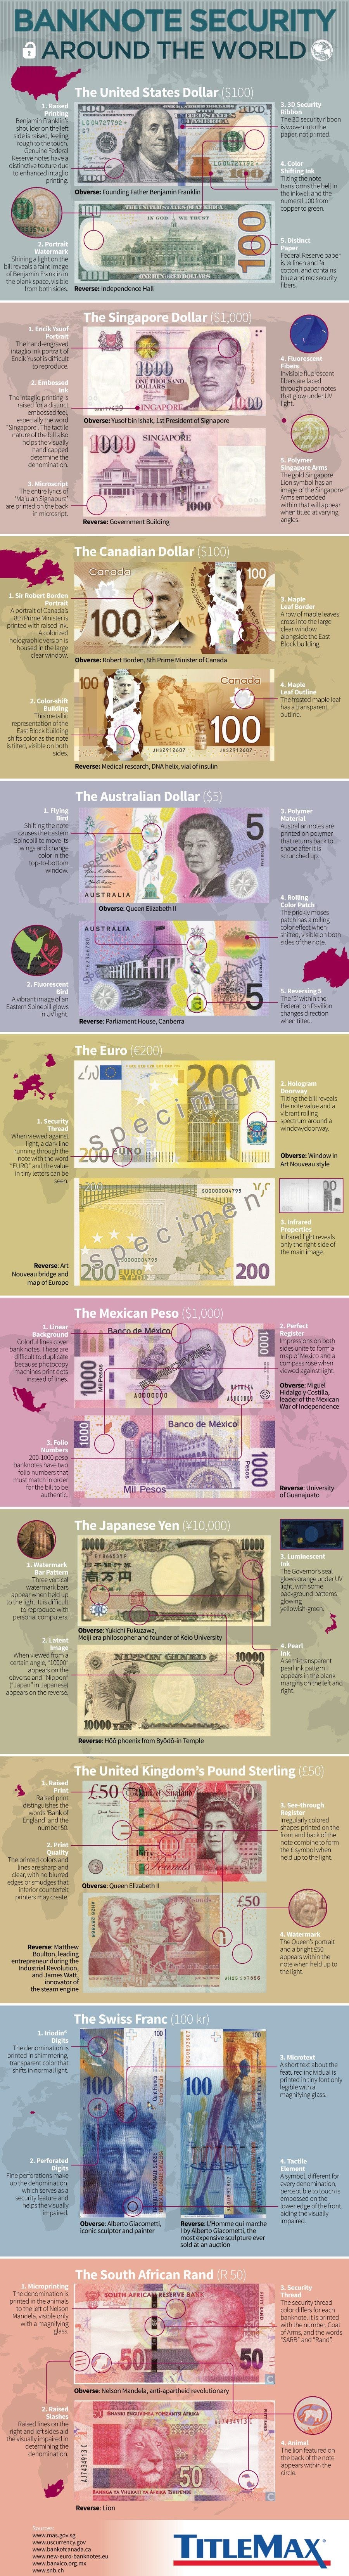 Banknote Security Around the World